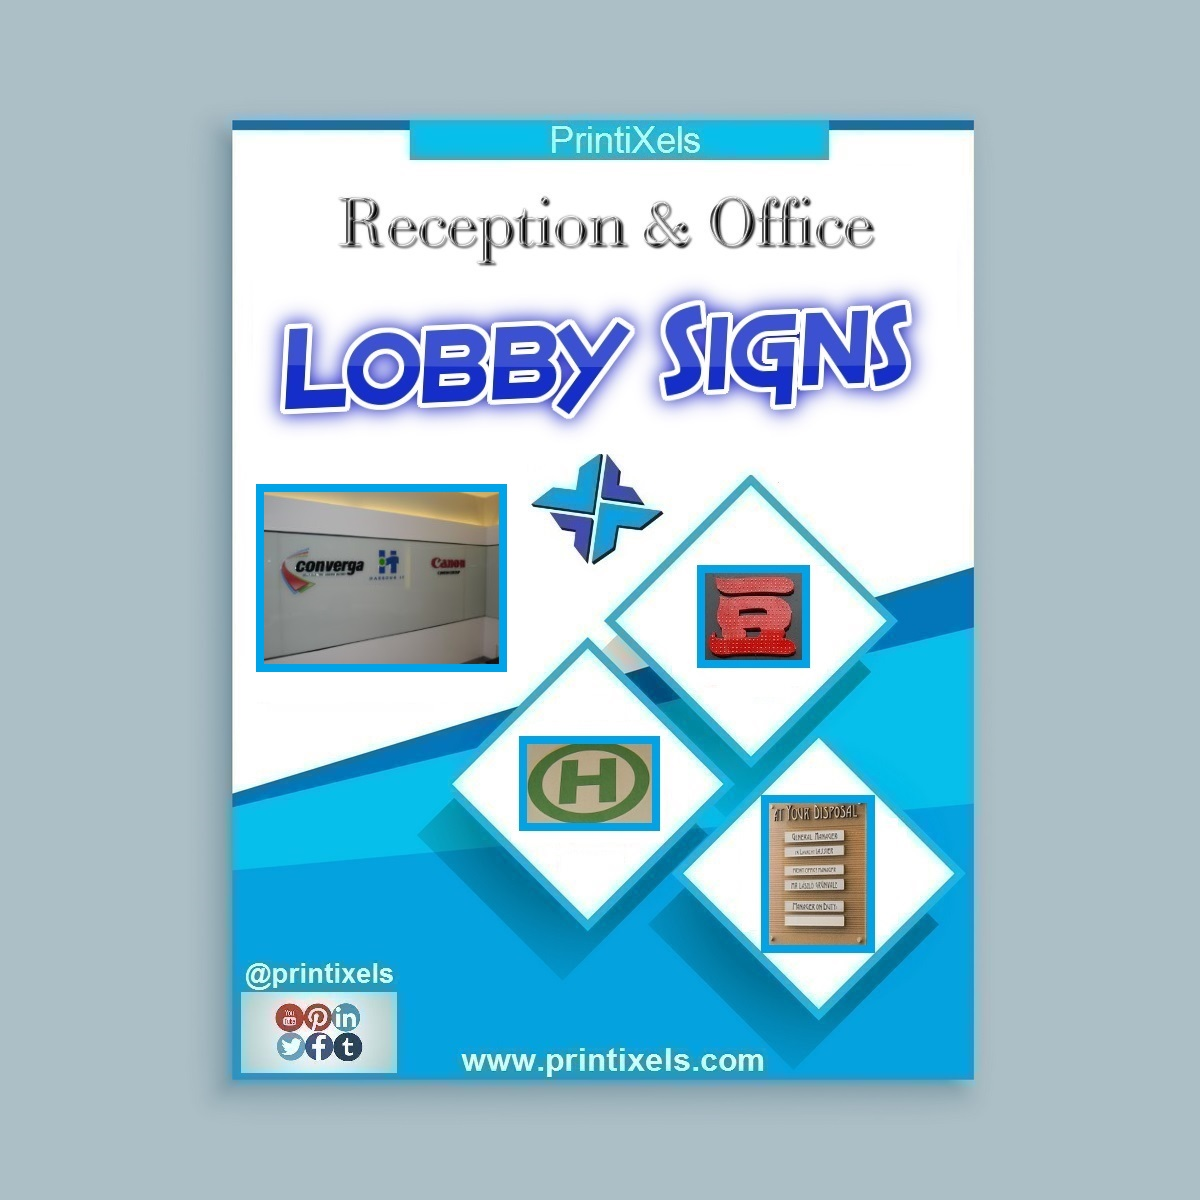 Reception & Office Lobby Signs